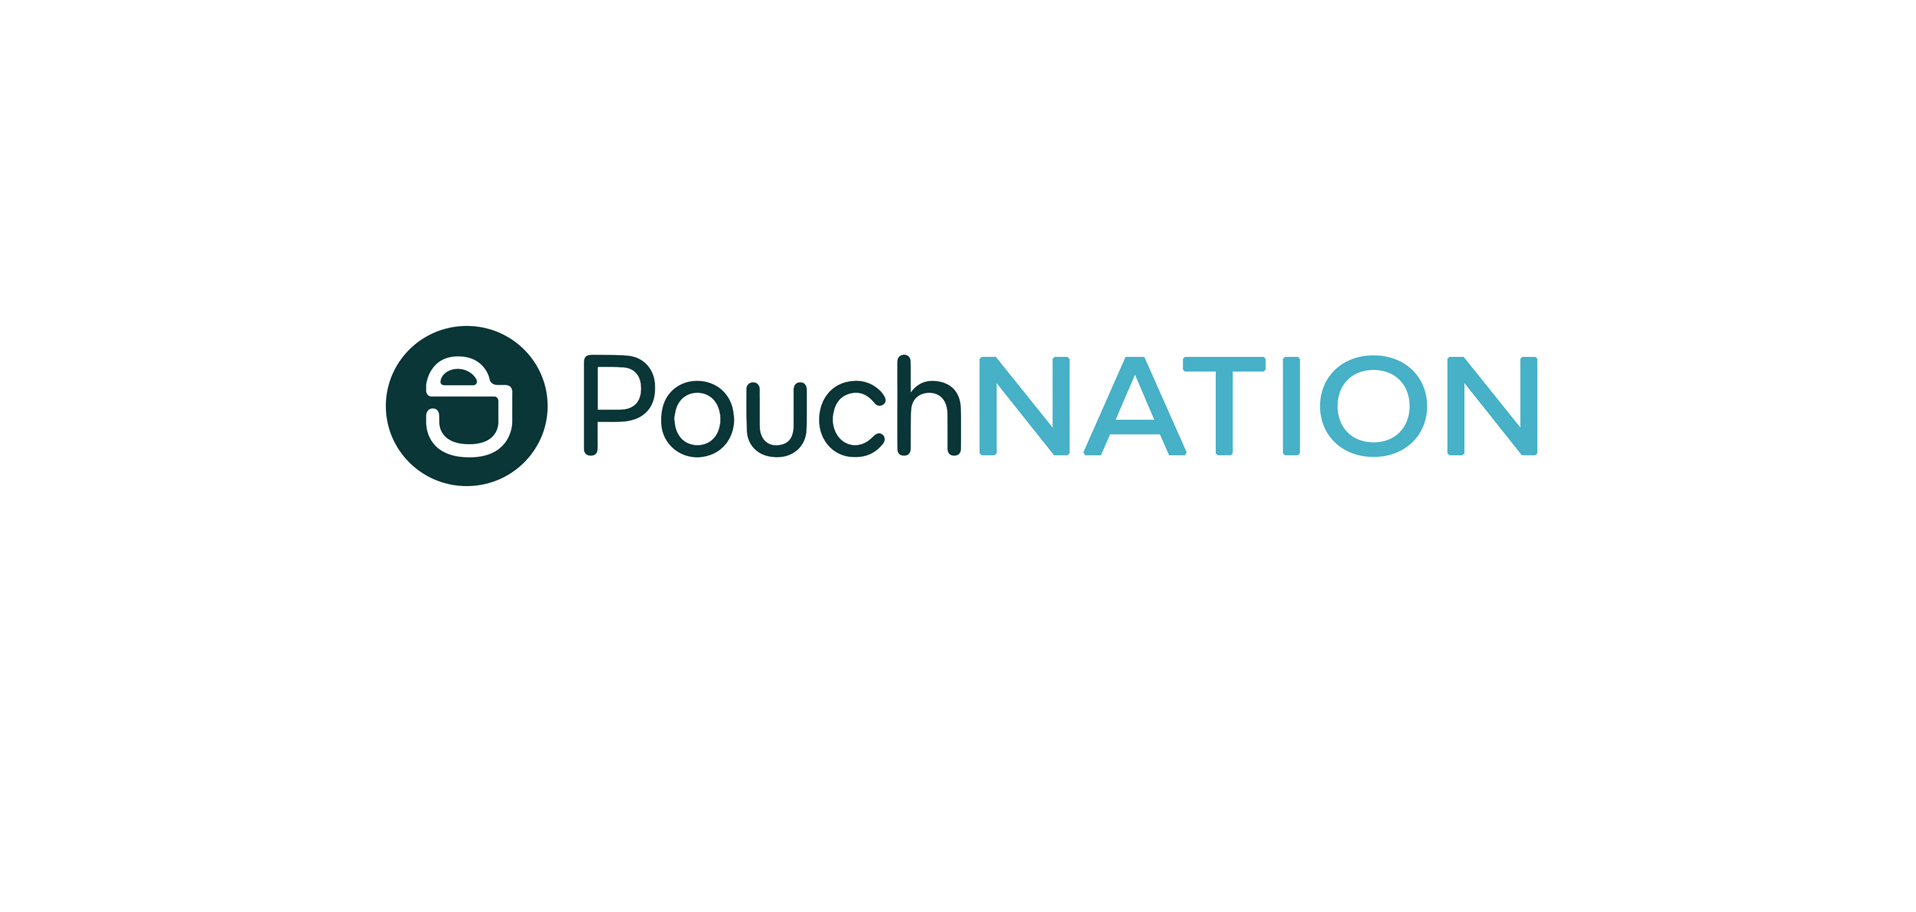 PouchNATION-newsroom-logo.jpg